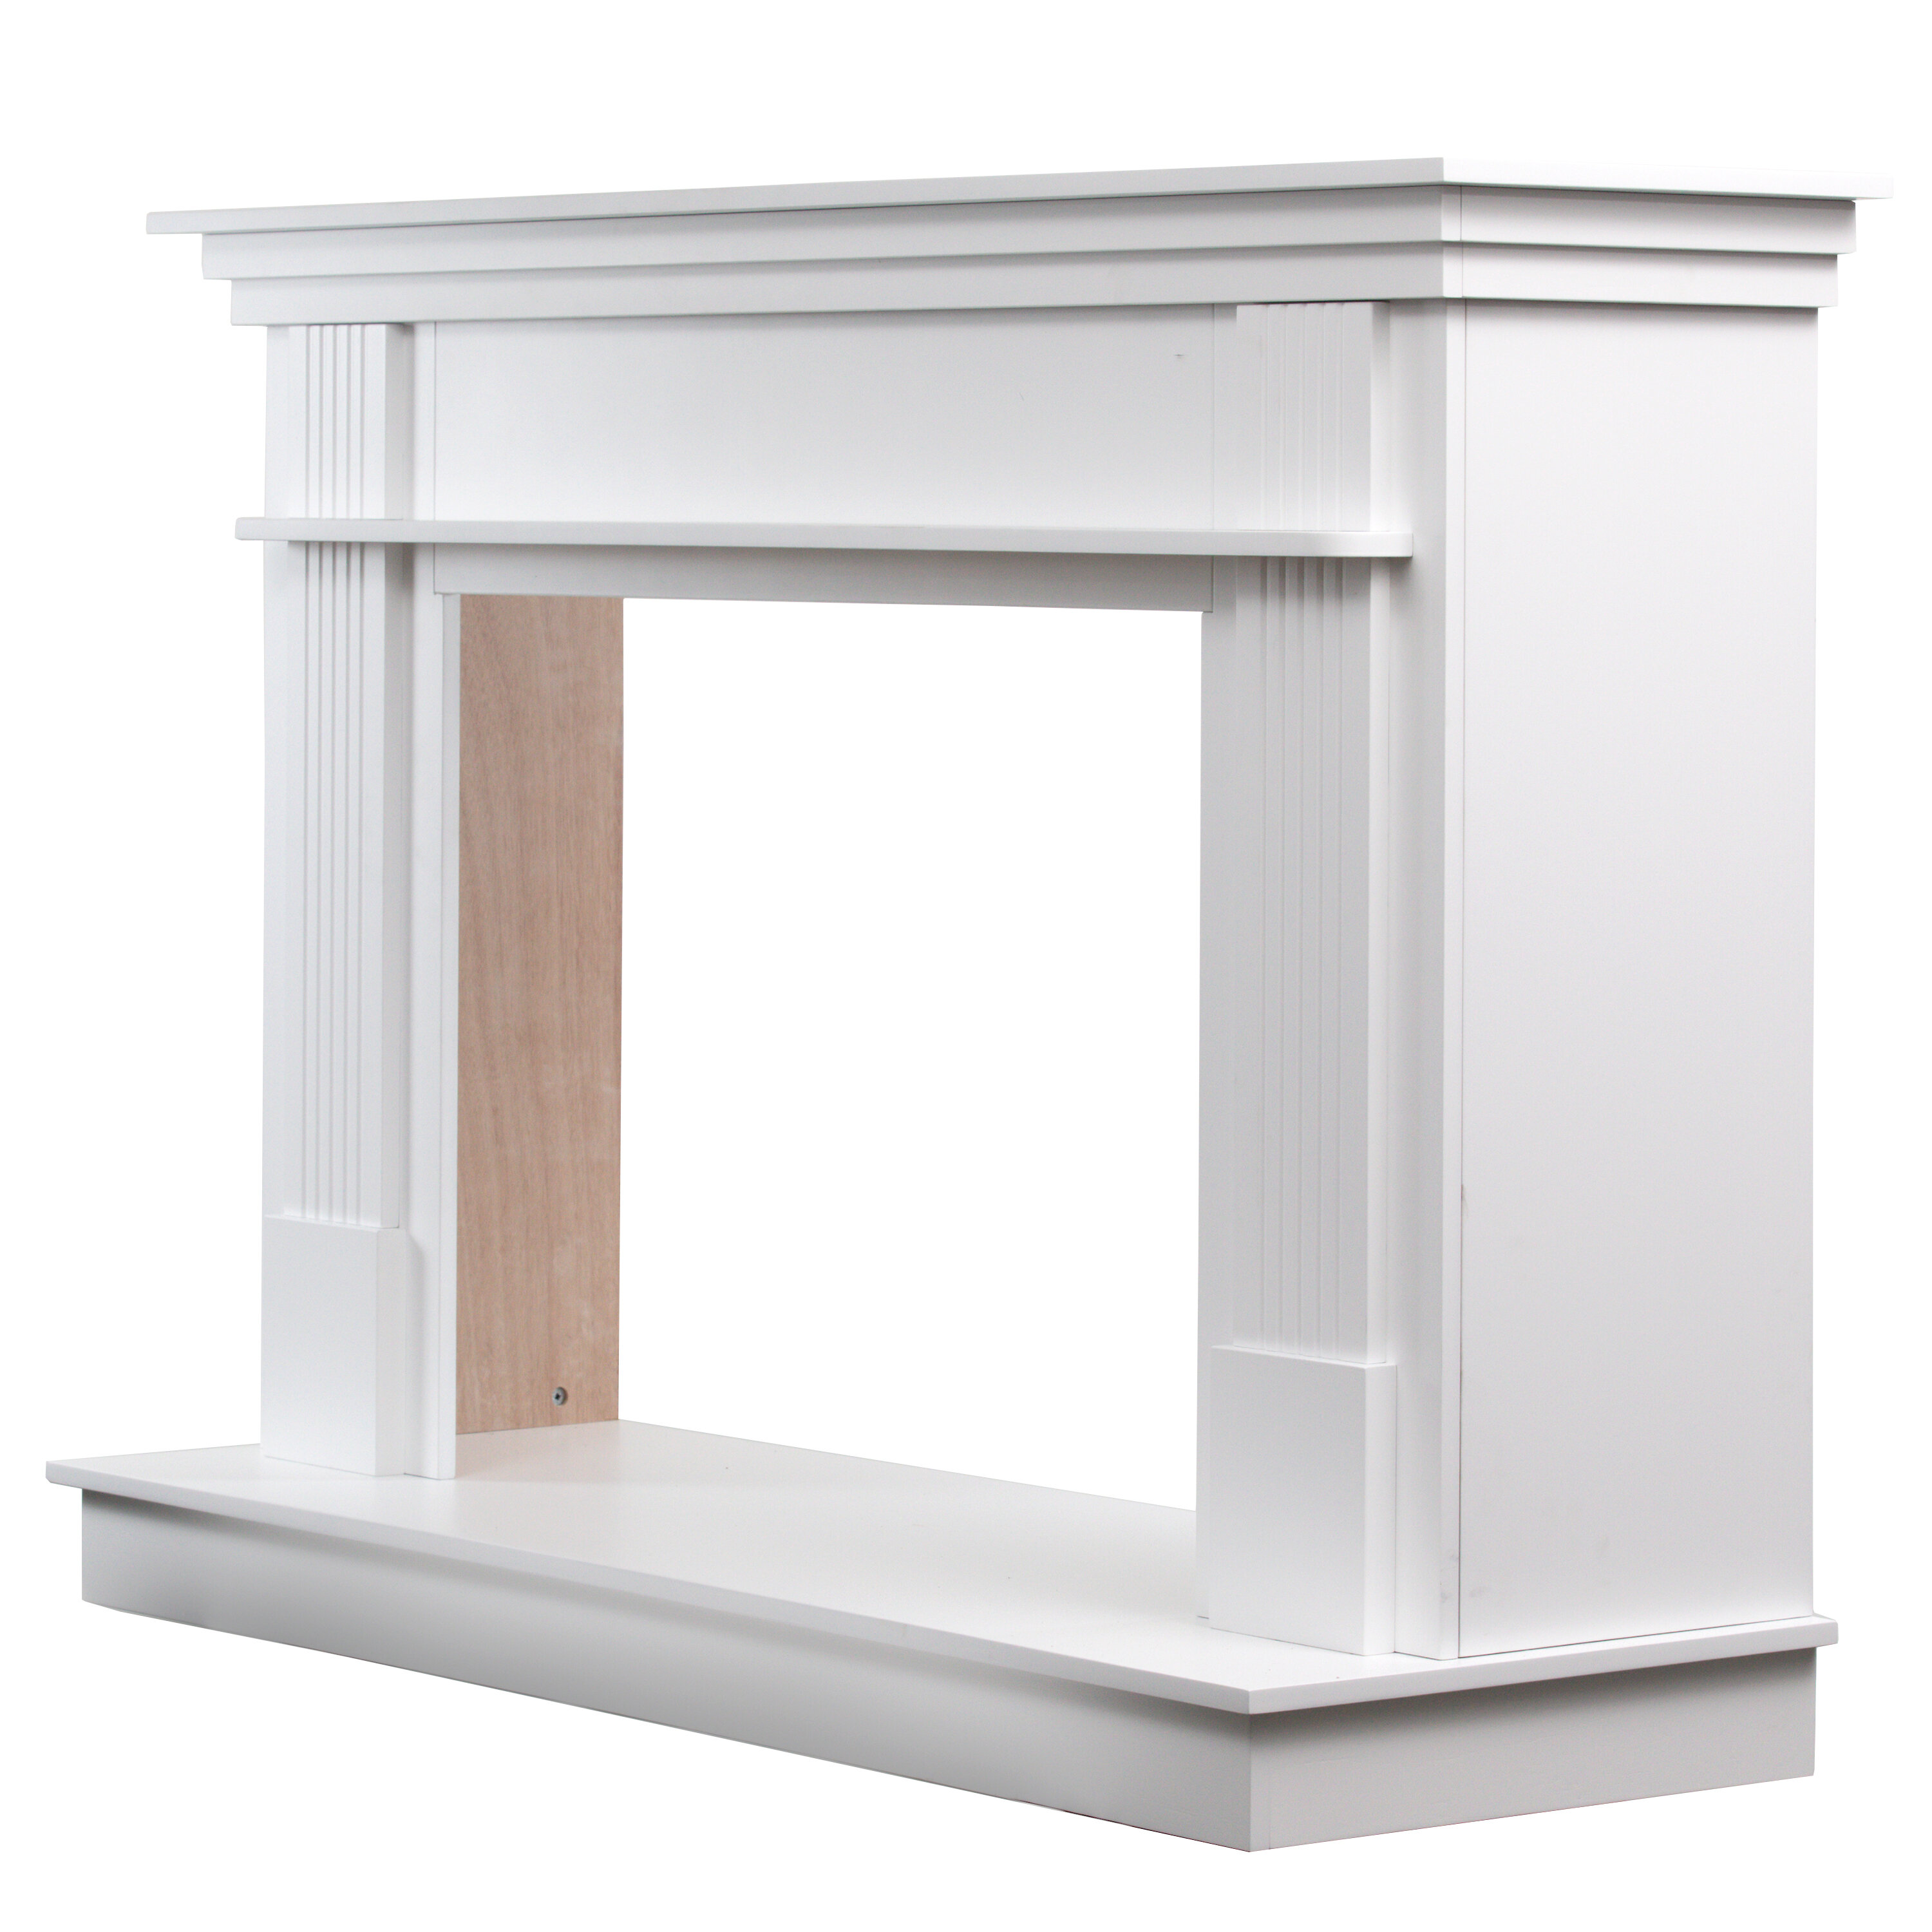 Rosecliff Heights Trinh Freestanding Fireplace Mantel Surround Reviews Wayfair